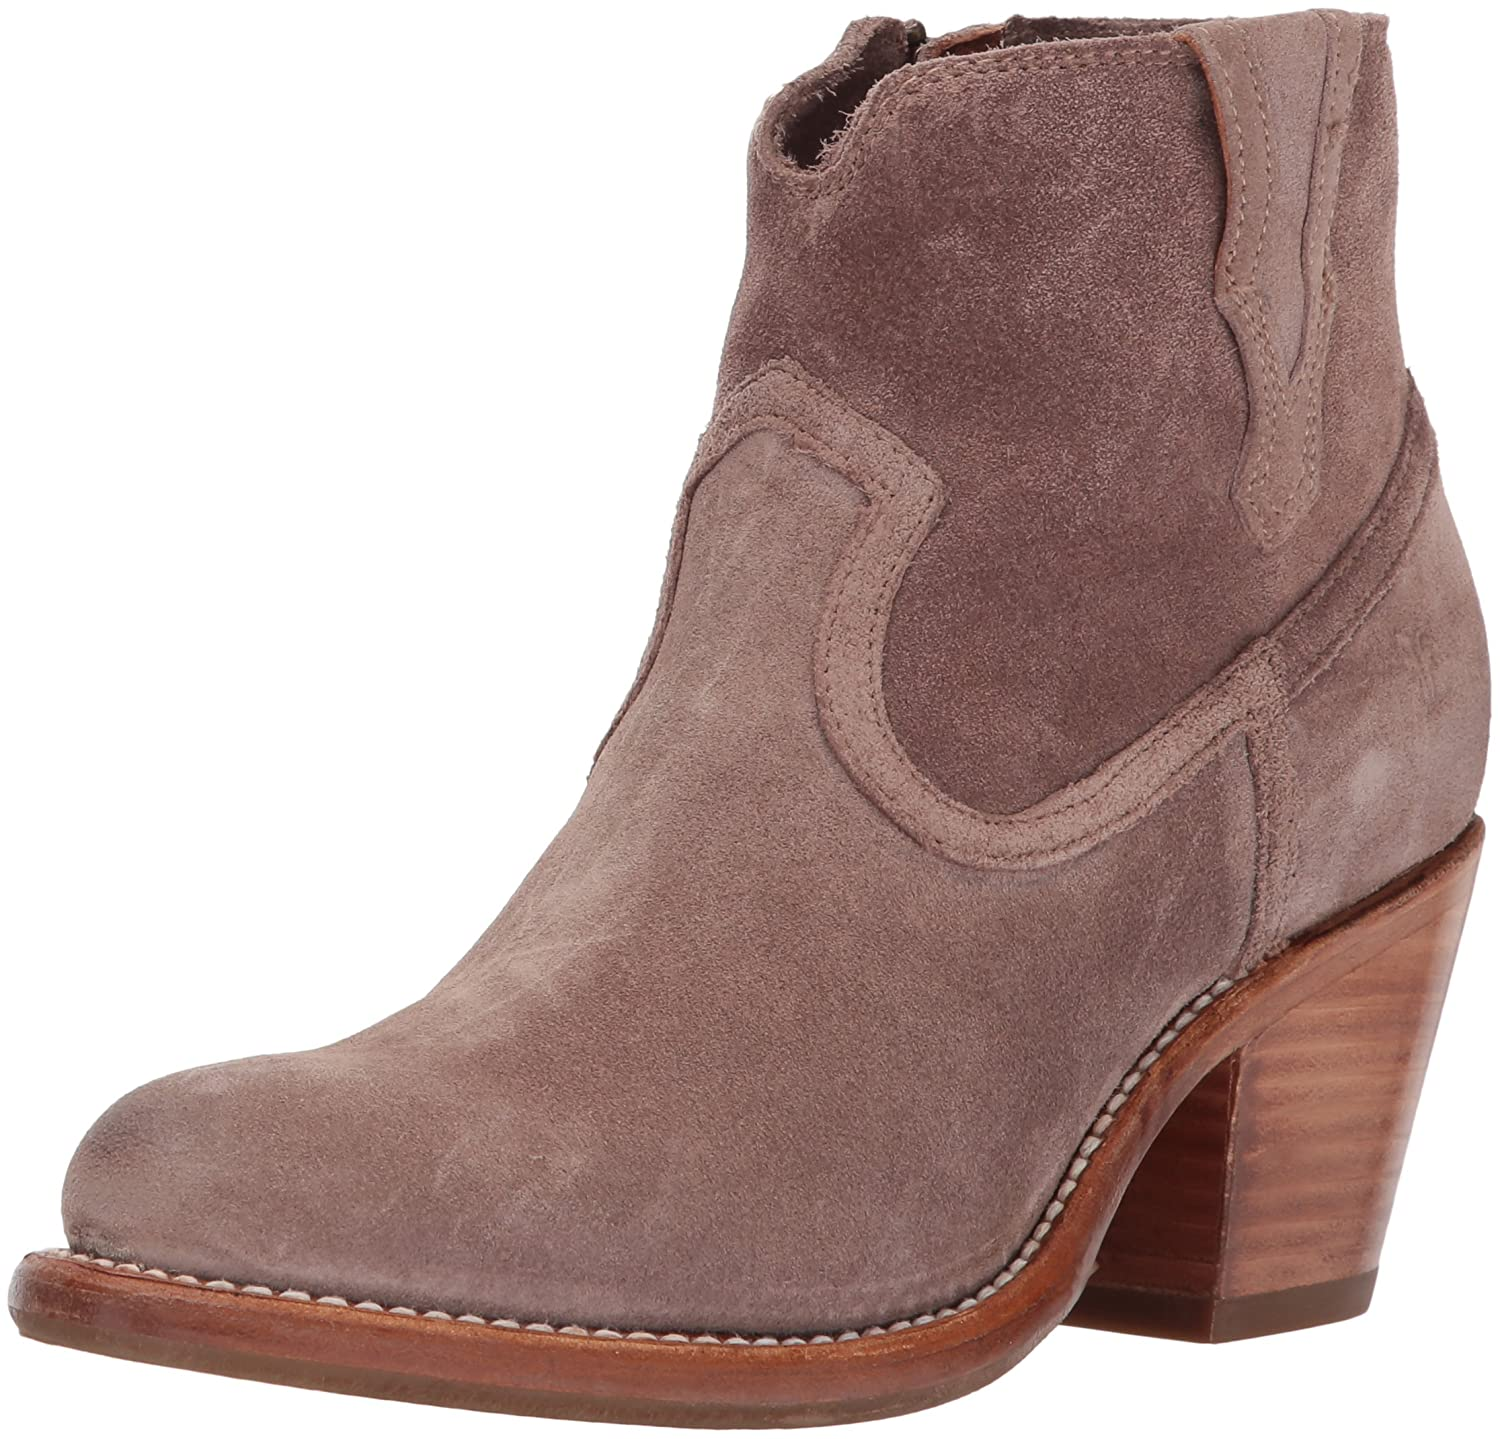 FRYE Women's Lillian Western Bootie Boot B01MQZ5PVH 10 B(M) US|Dusty Rose Soft Oiled Suede